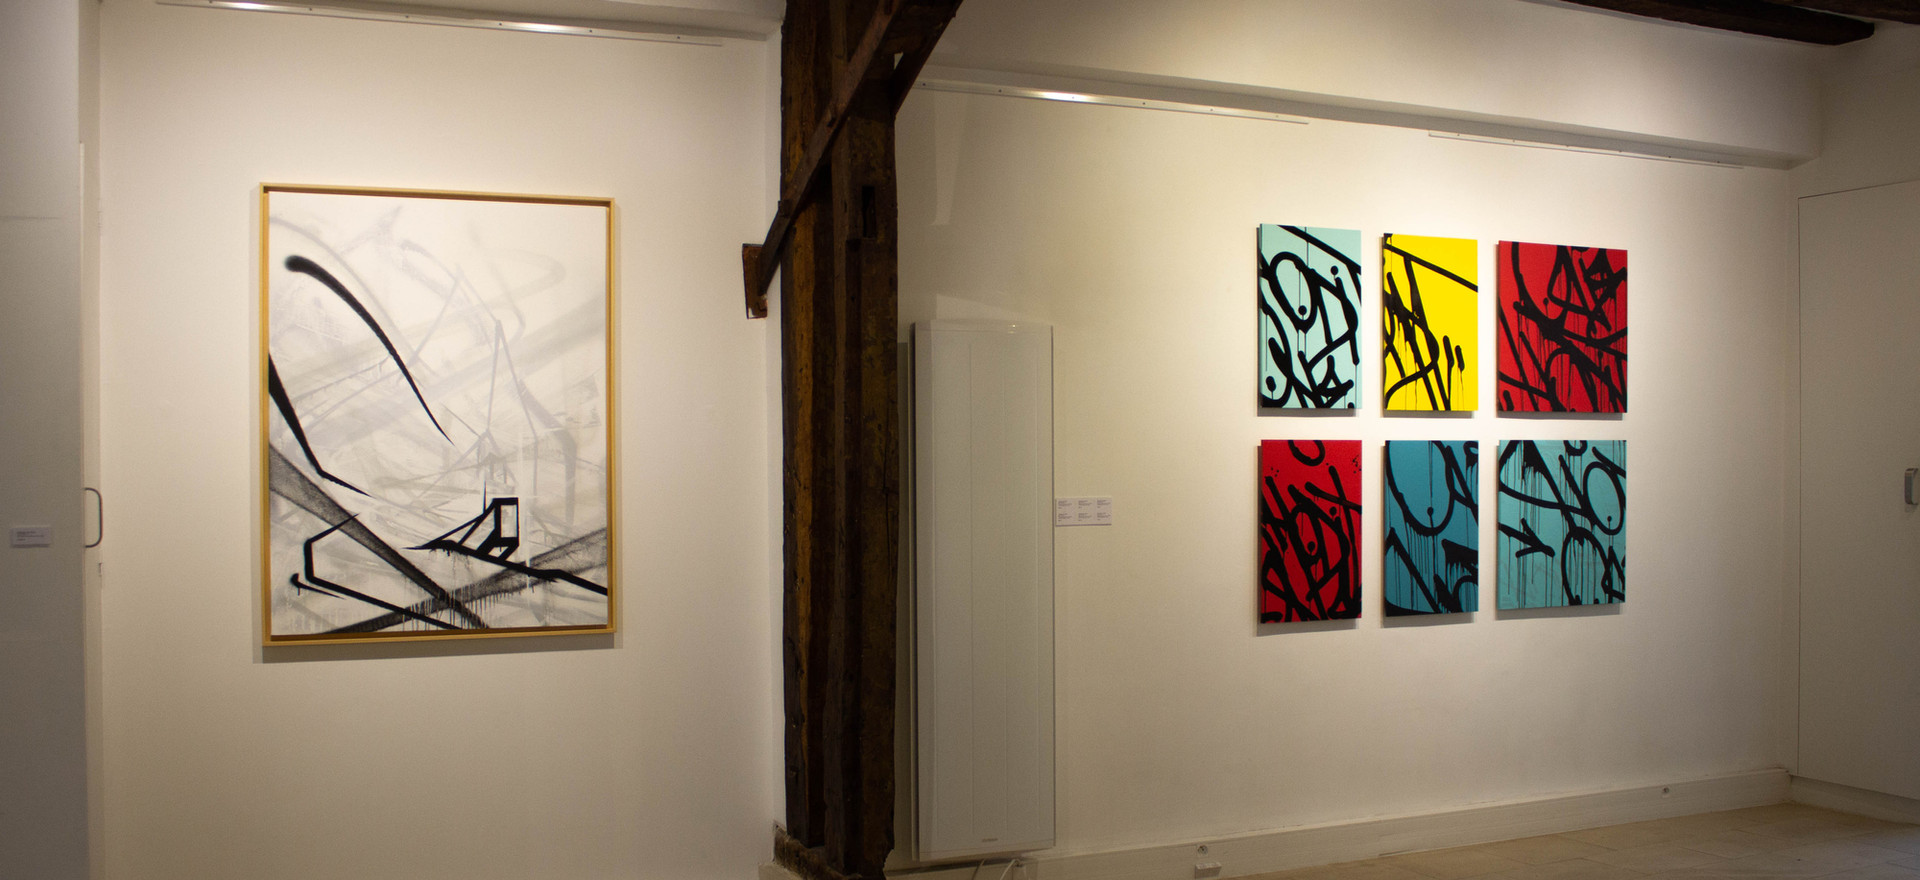 TRANSITIONS SOLO SHOW